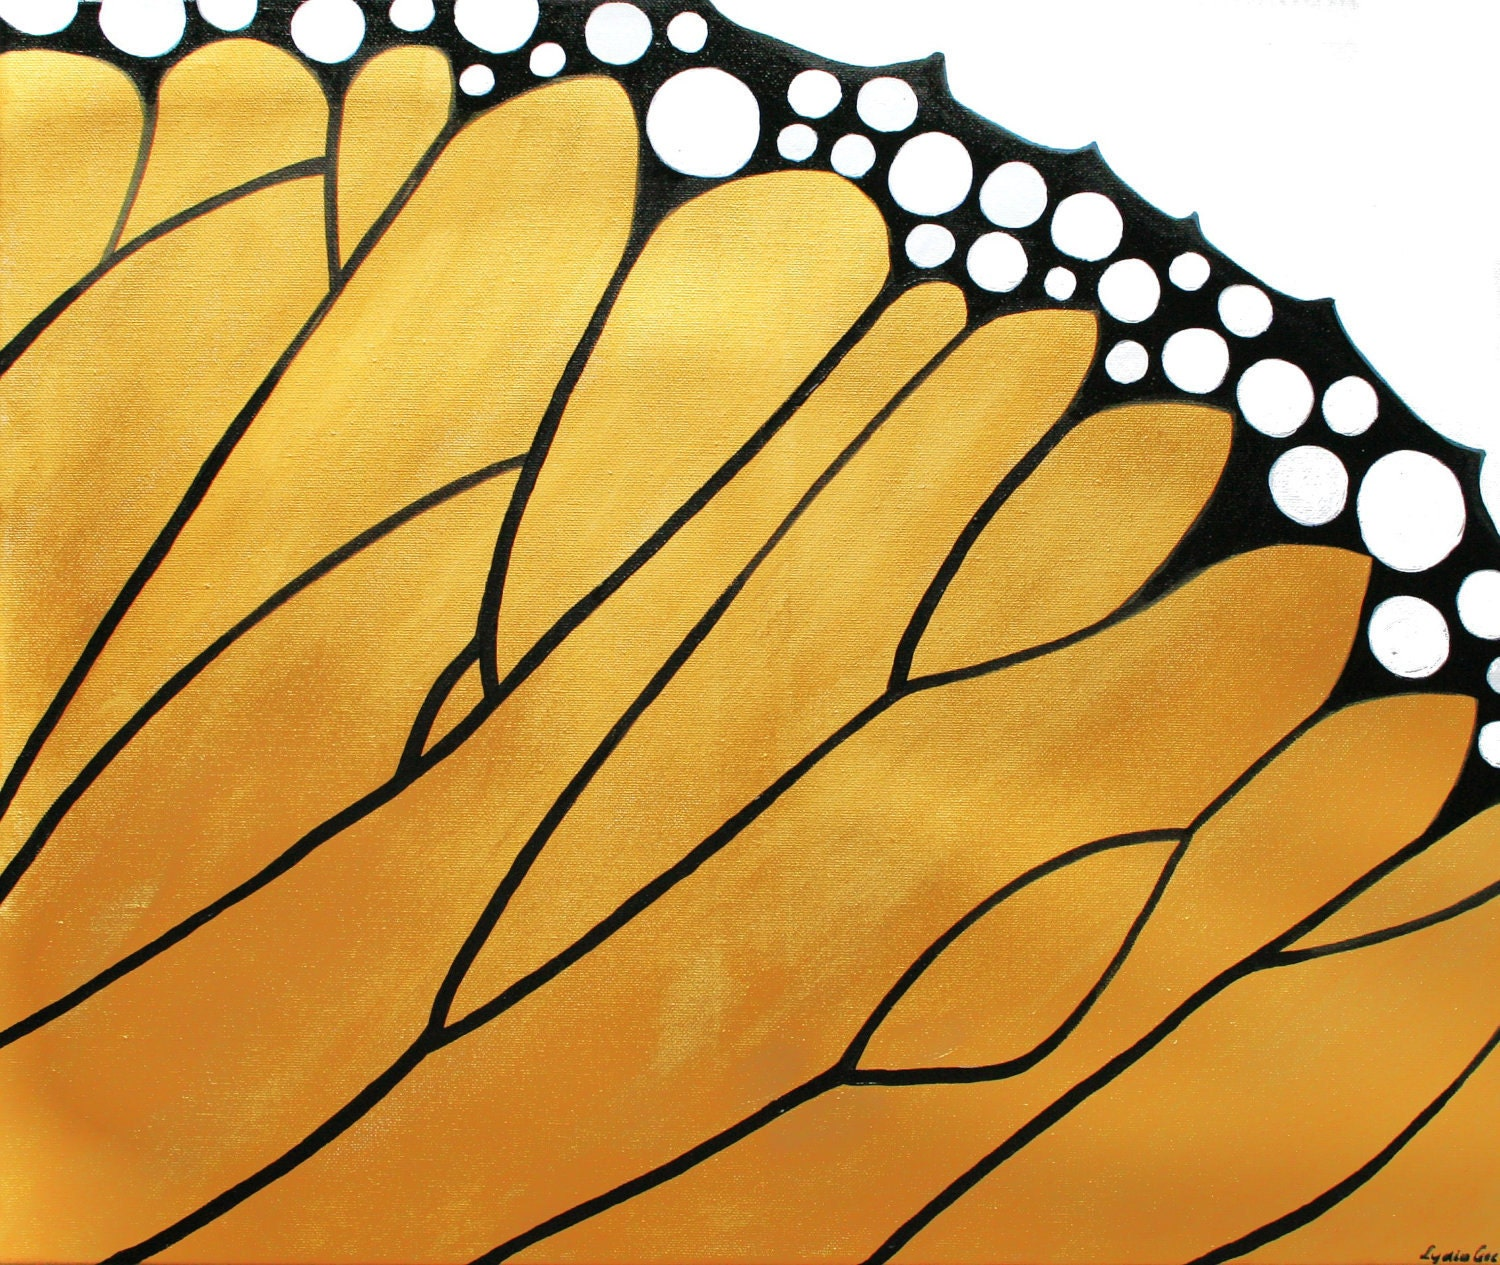 Monarch butterfly painting with Swarovski - Butterfly Effect - butterfly wing golden painting - butterfly art - yellow abstract by Lydia Gee - LydiaGee